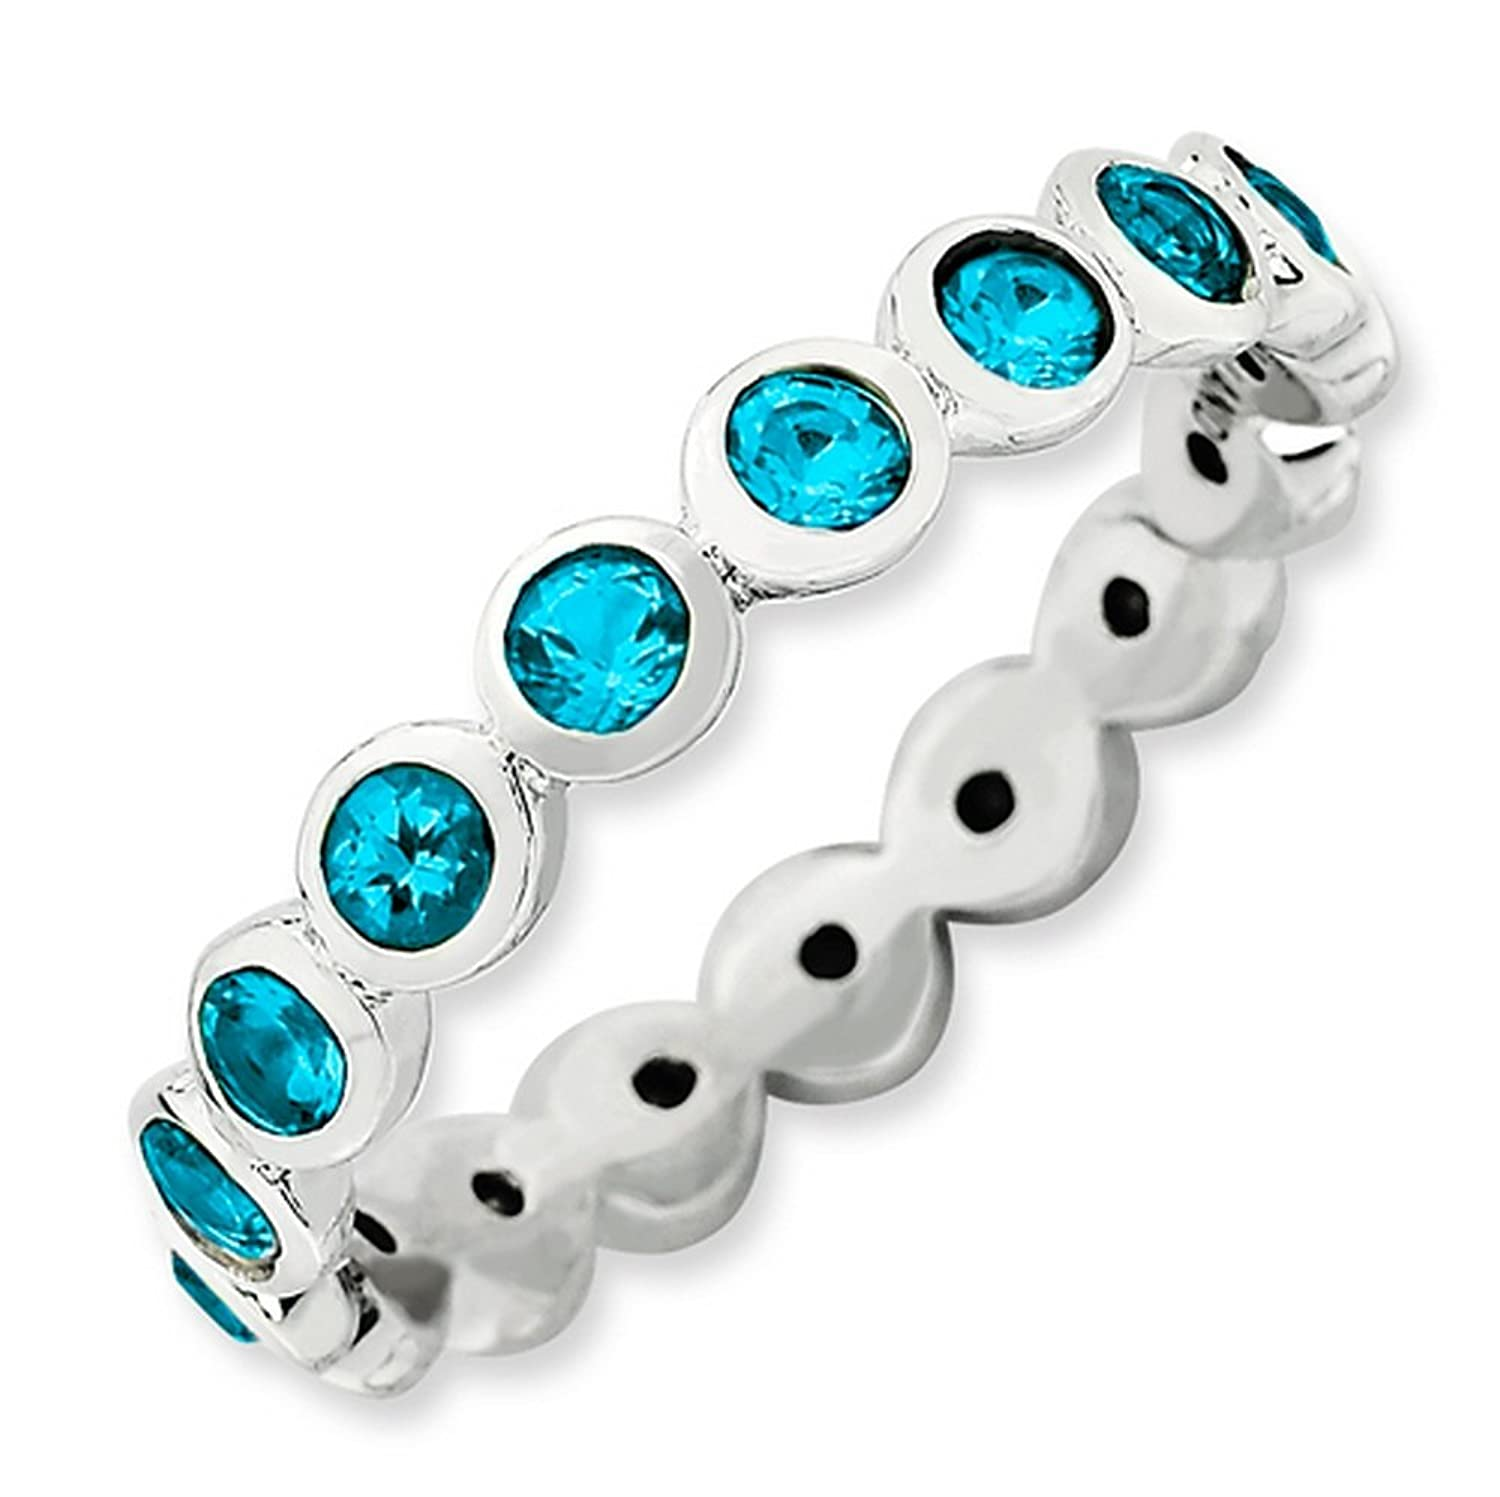 IceCarats Designer Jewelry Sterling Silver Stackable Expressions December Swarovski Ring